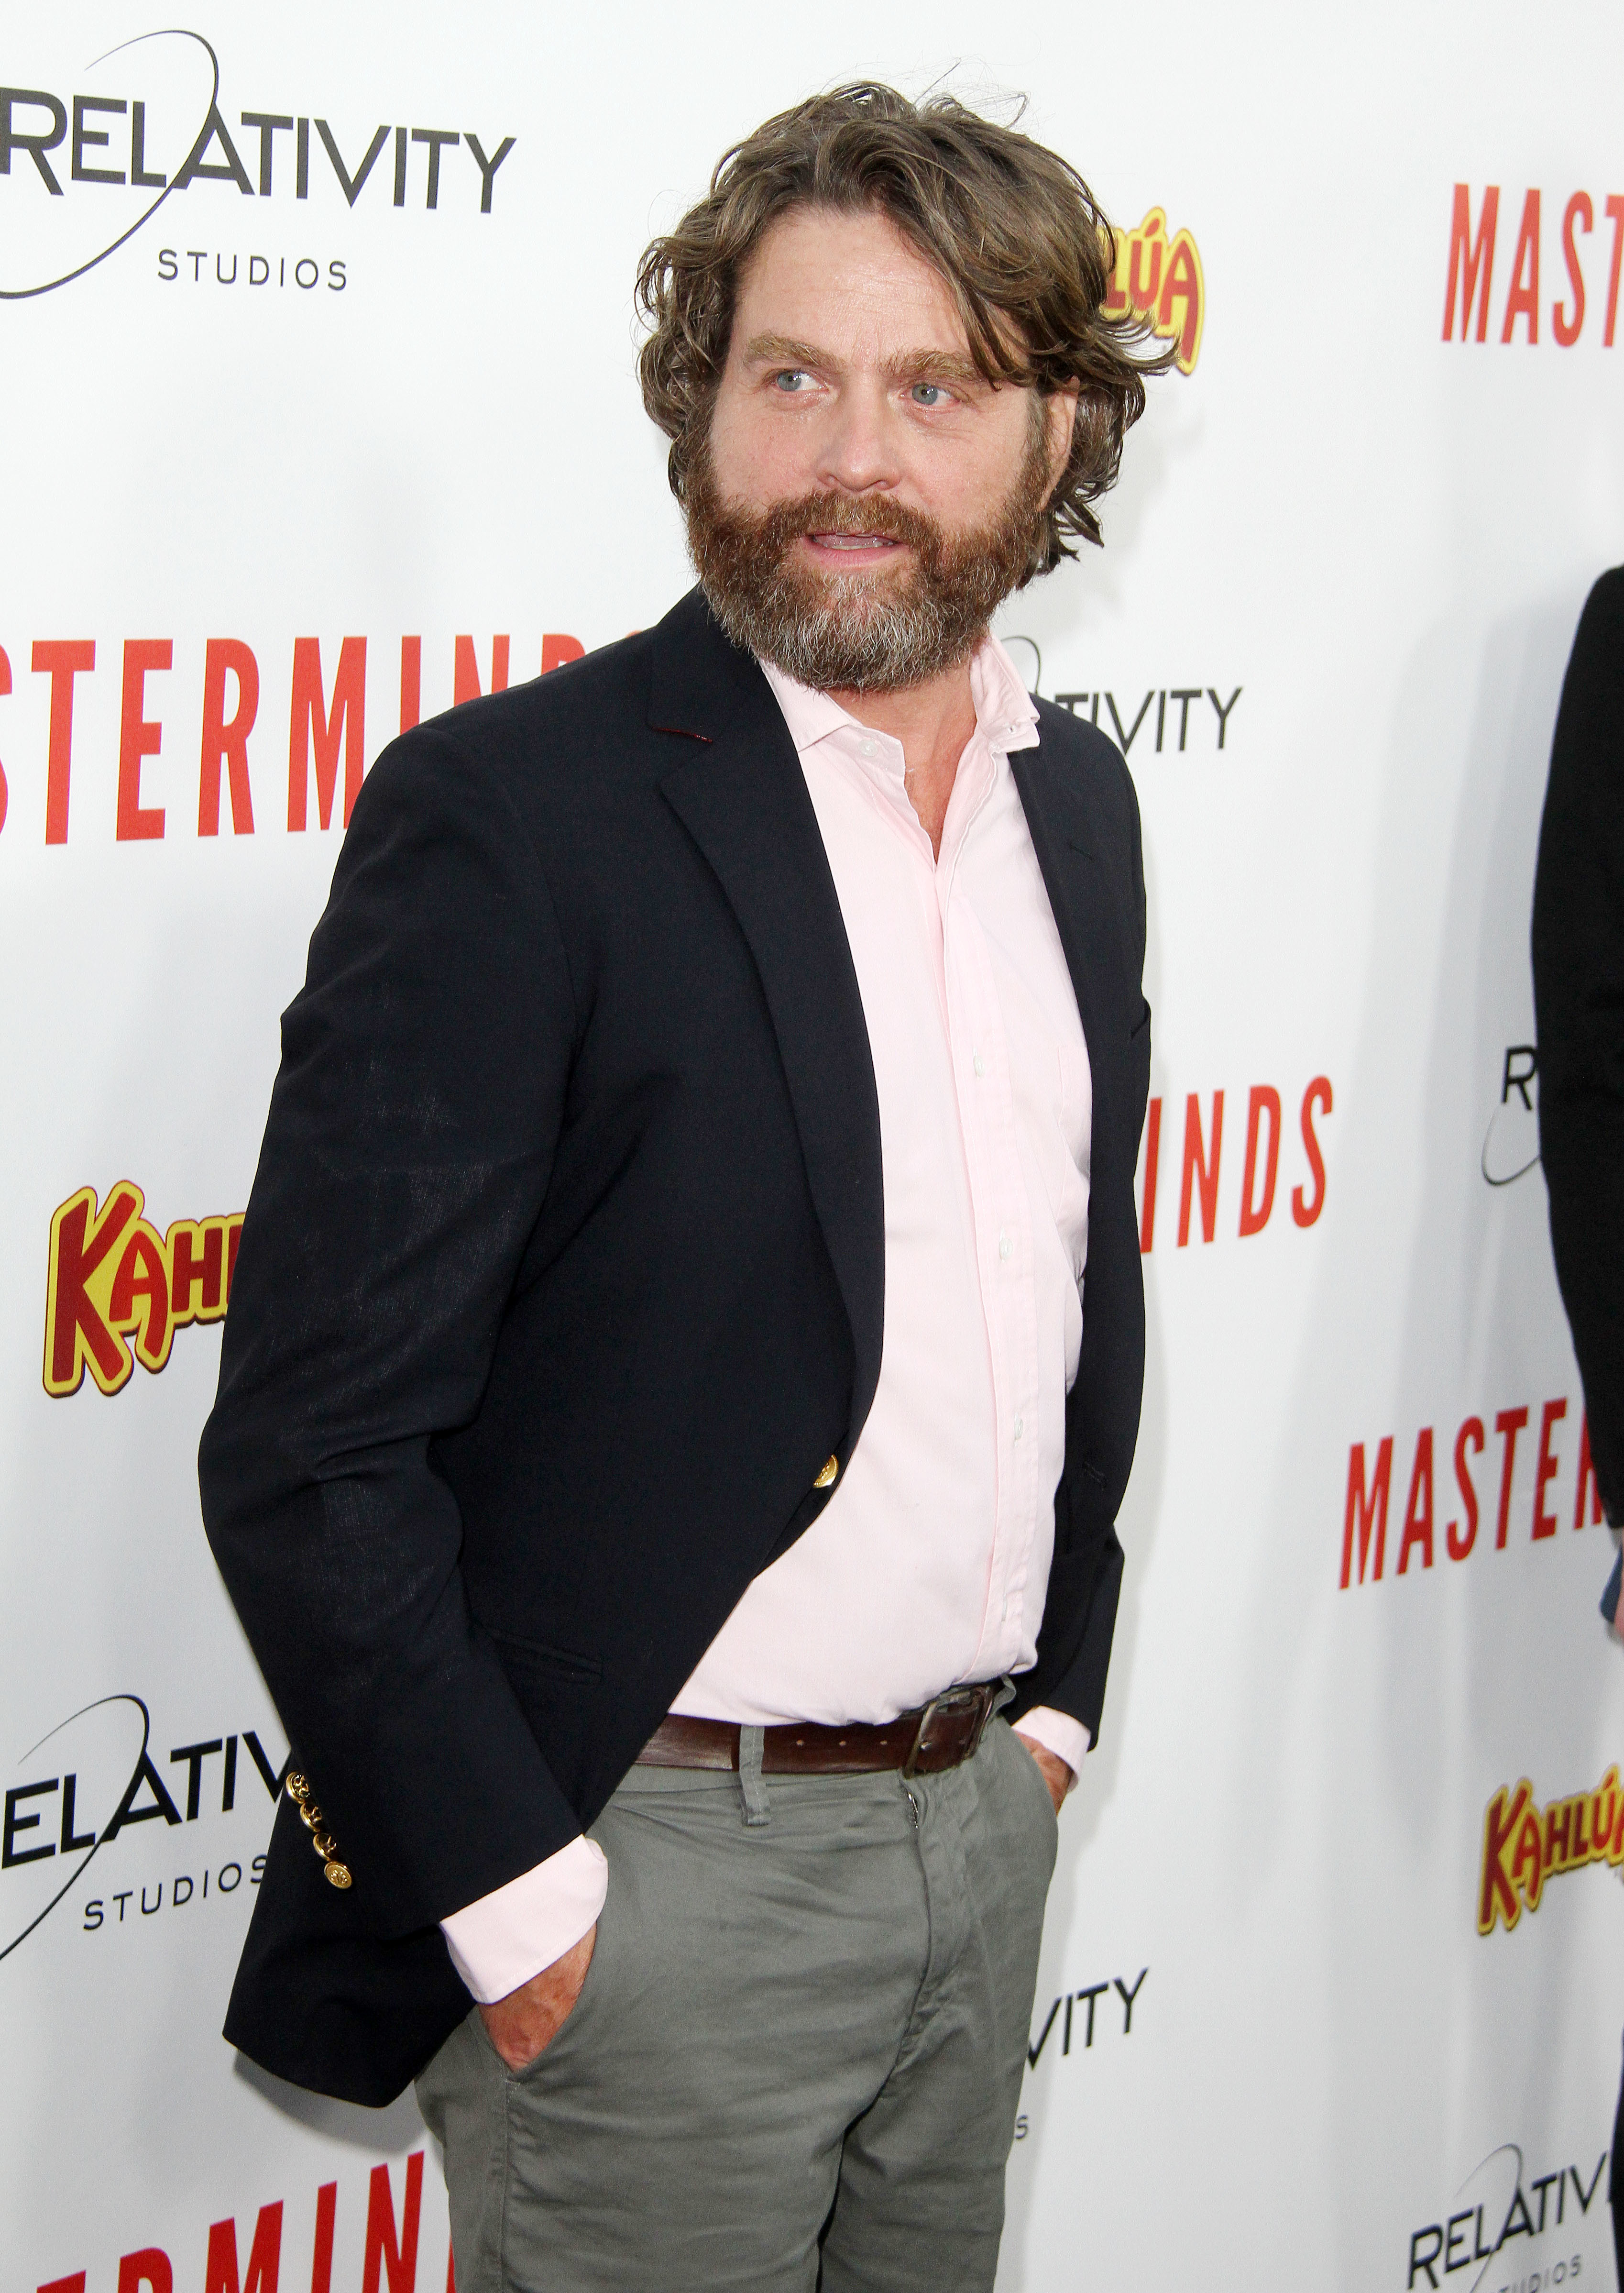 """Zach Galifianakis attends the """"Masterminds"""" premiere held at The TCL Chinese Theatre in Hollywood, Calif., on Sept. 26, 2016."""